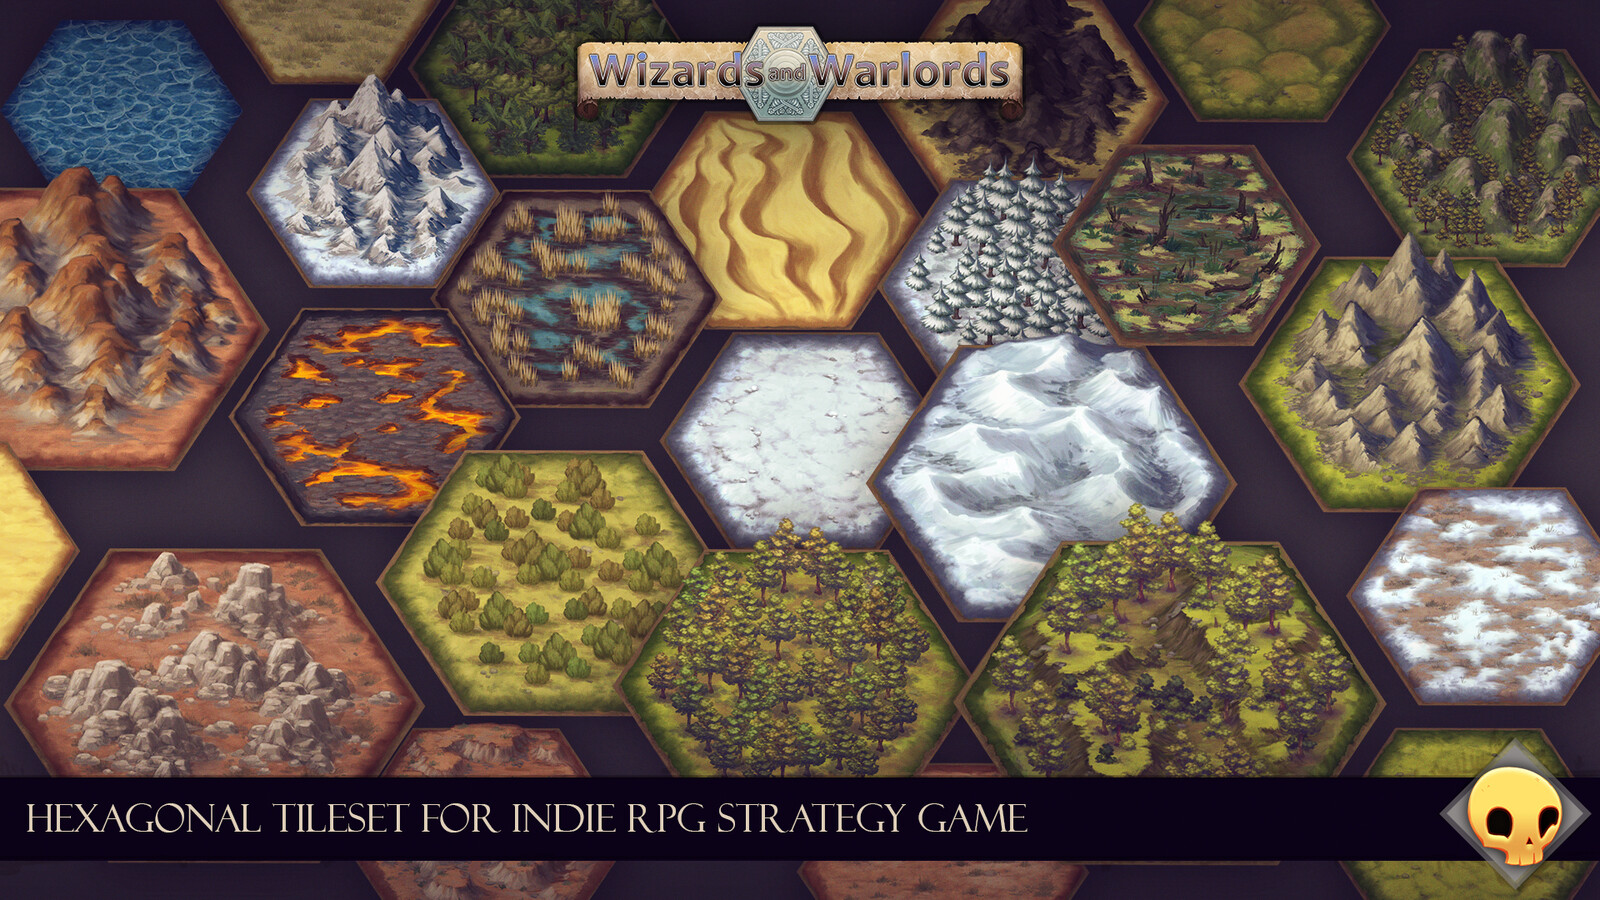 Overview of the tiles created for the tileset